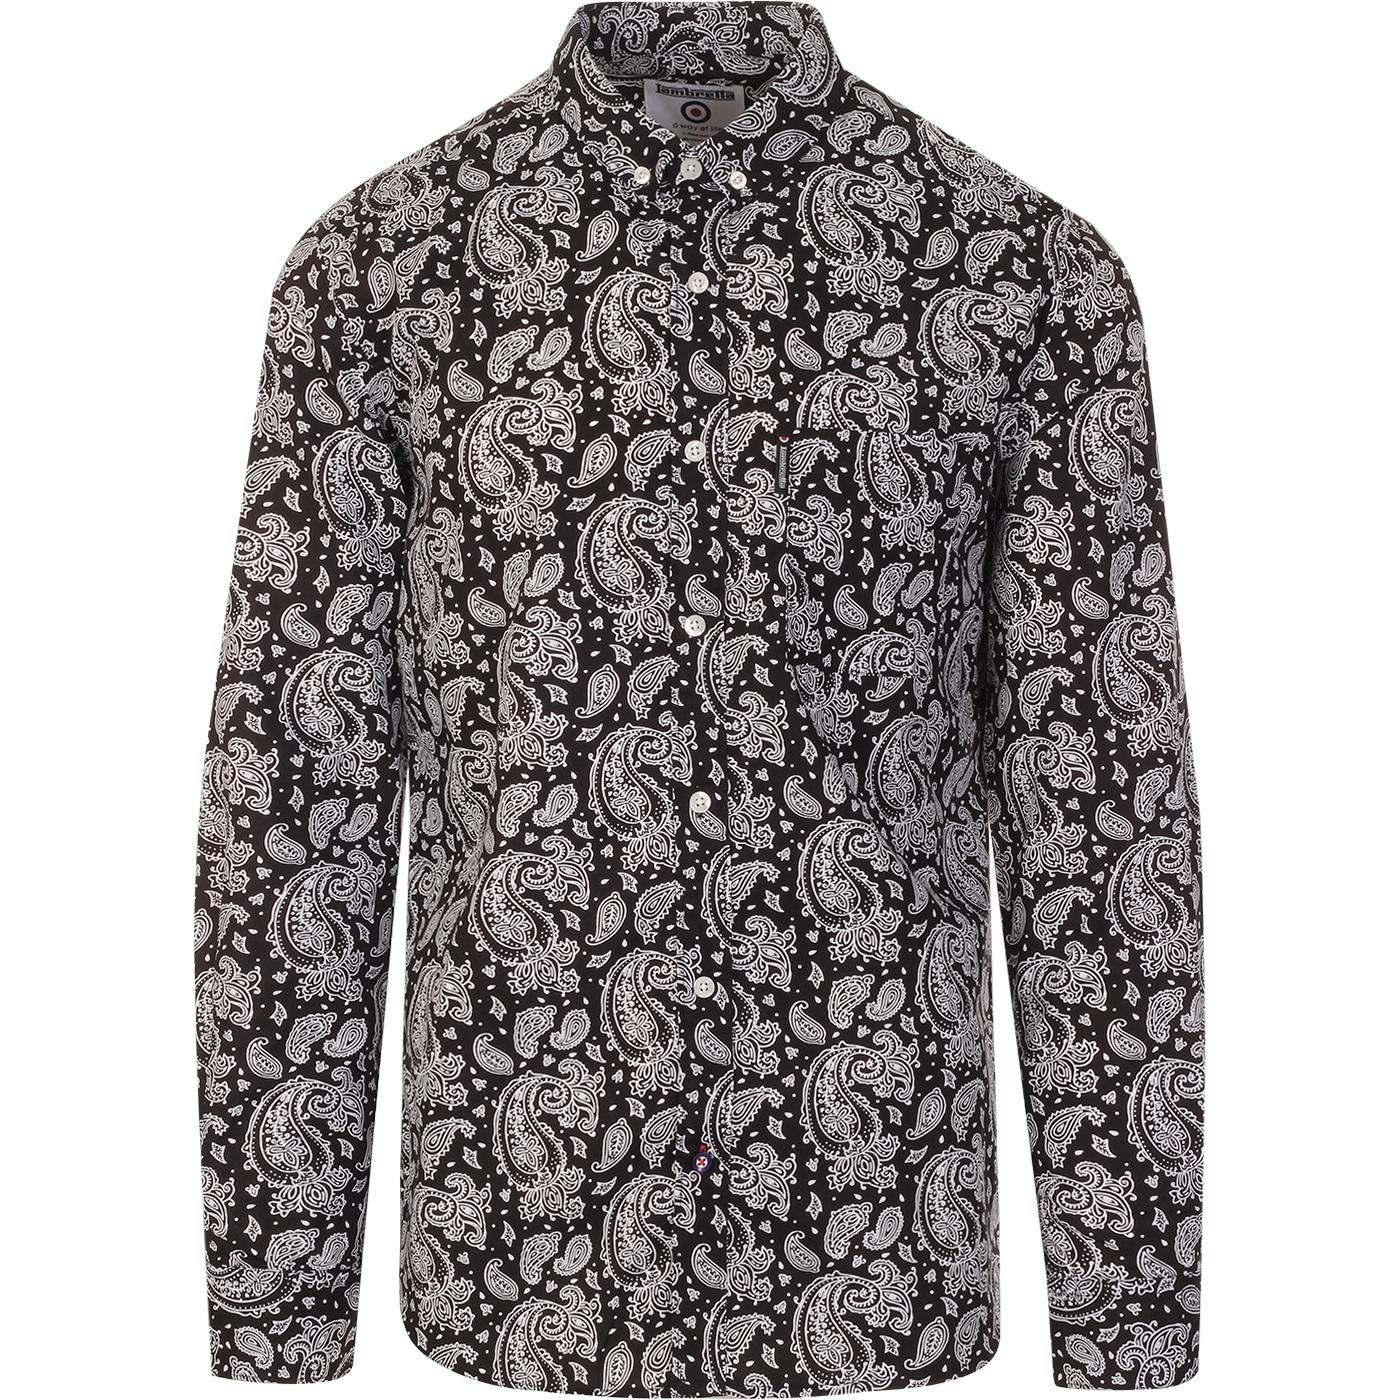 LAMBRETTA 60s Mod Button Down Paisley Shirt (B/W)